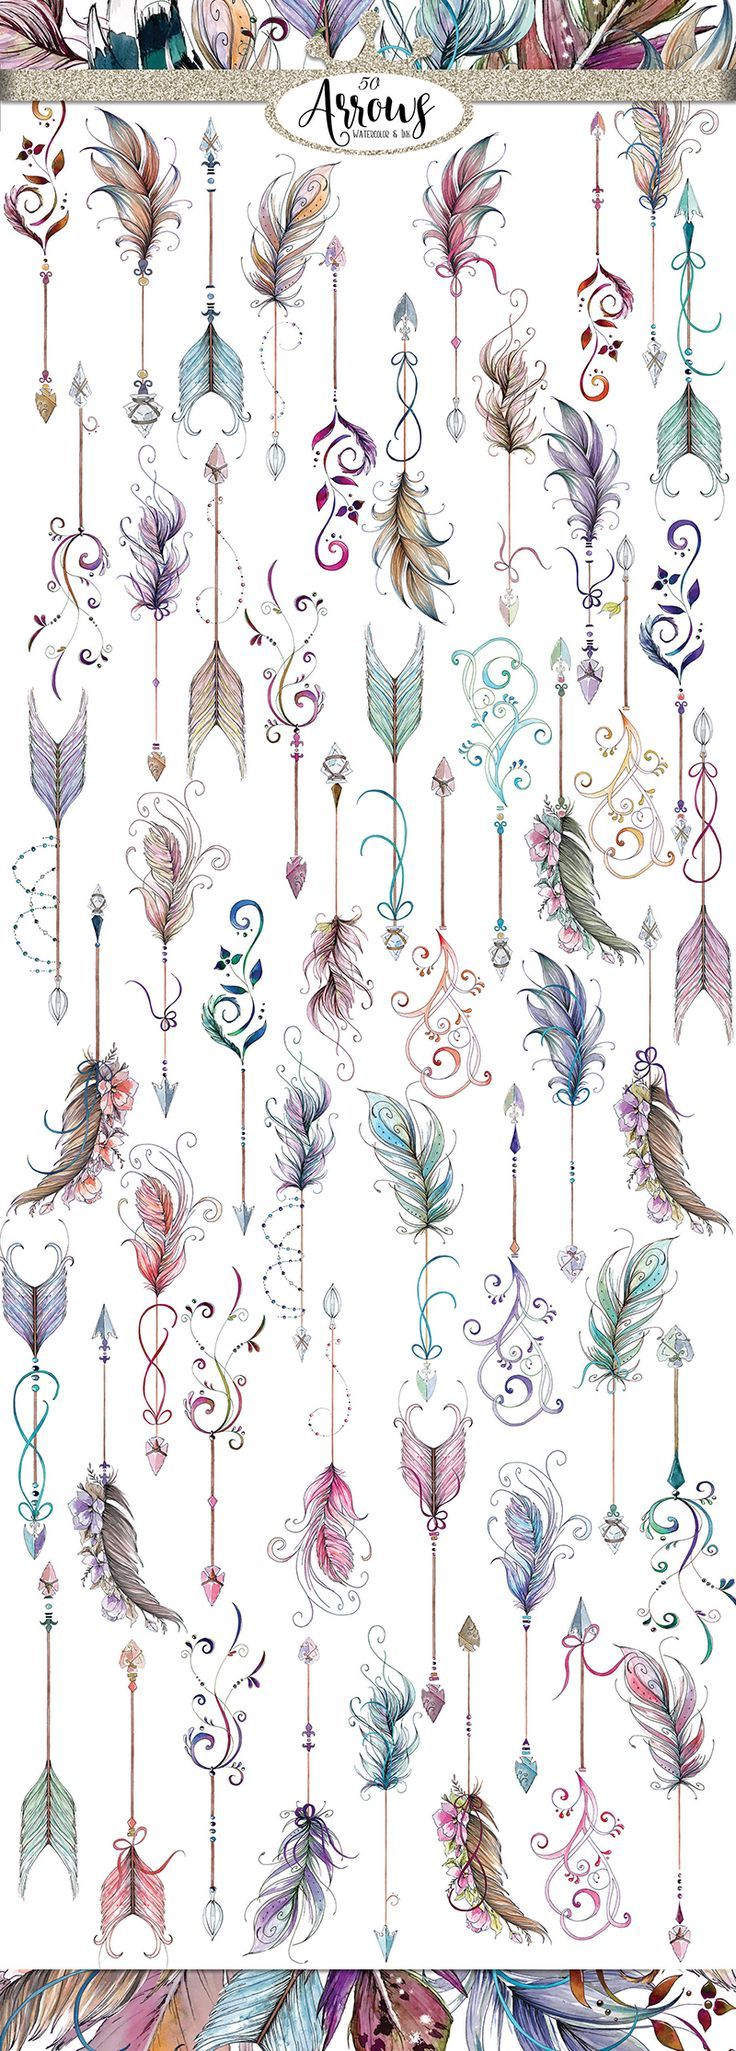 50+ Free Watercolor Boho Arrows